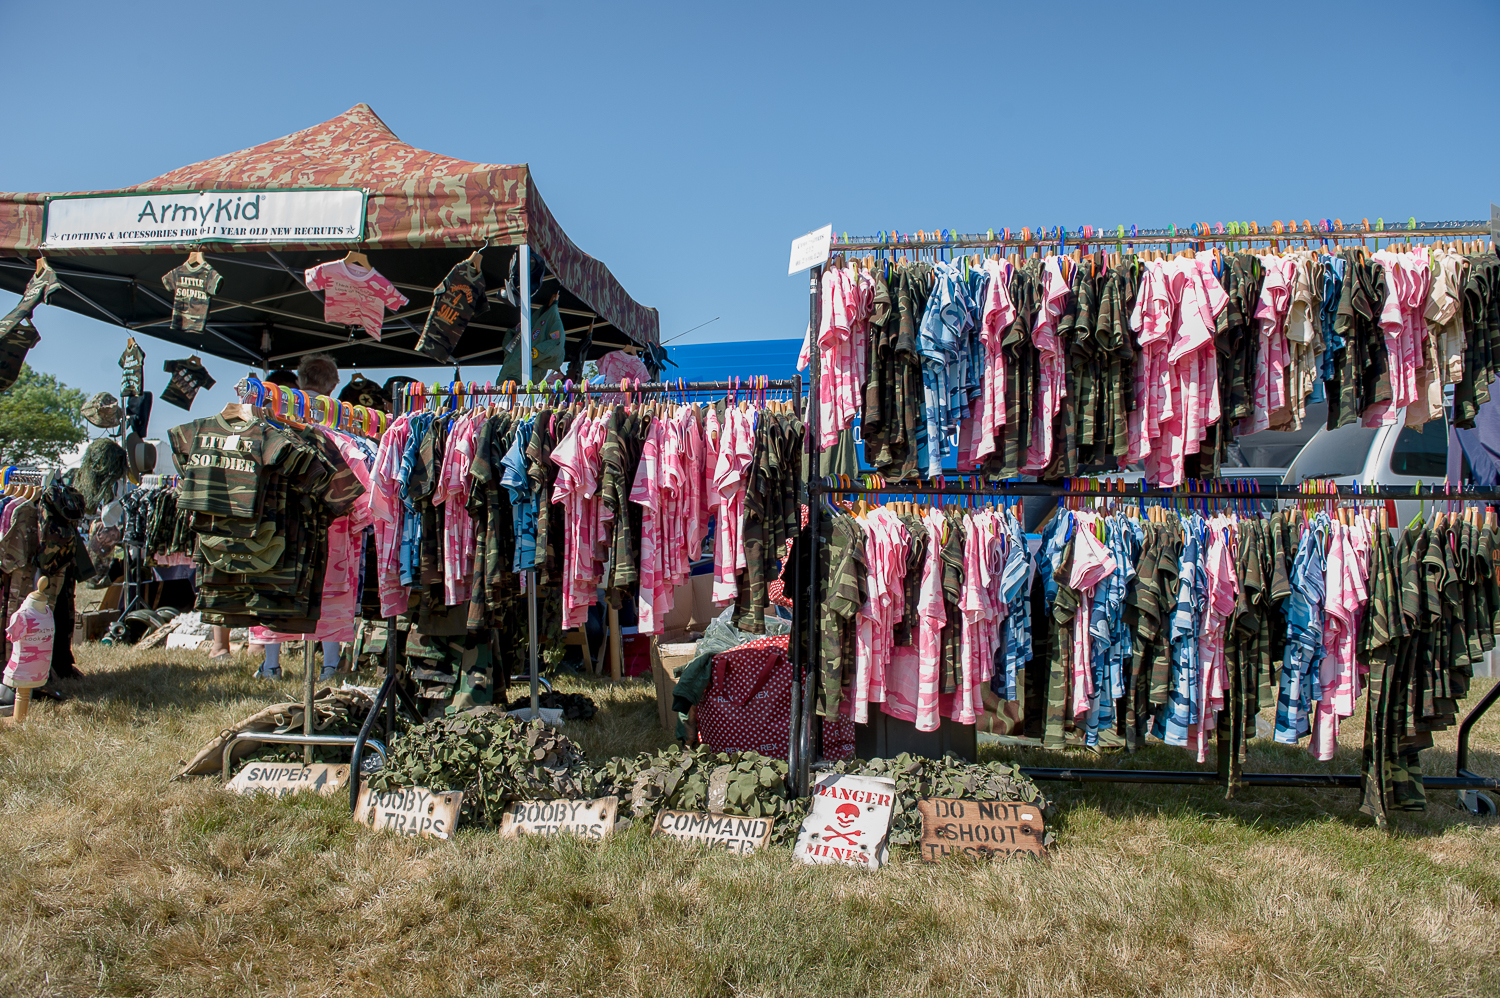 """Army Kids"" stall at War and peace show, kent"